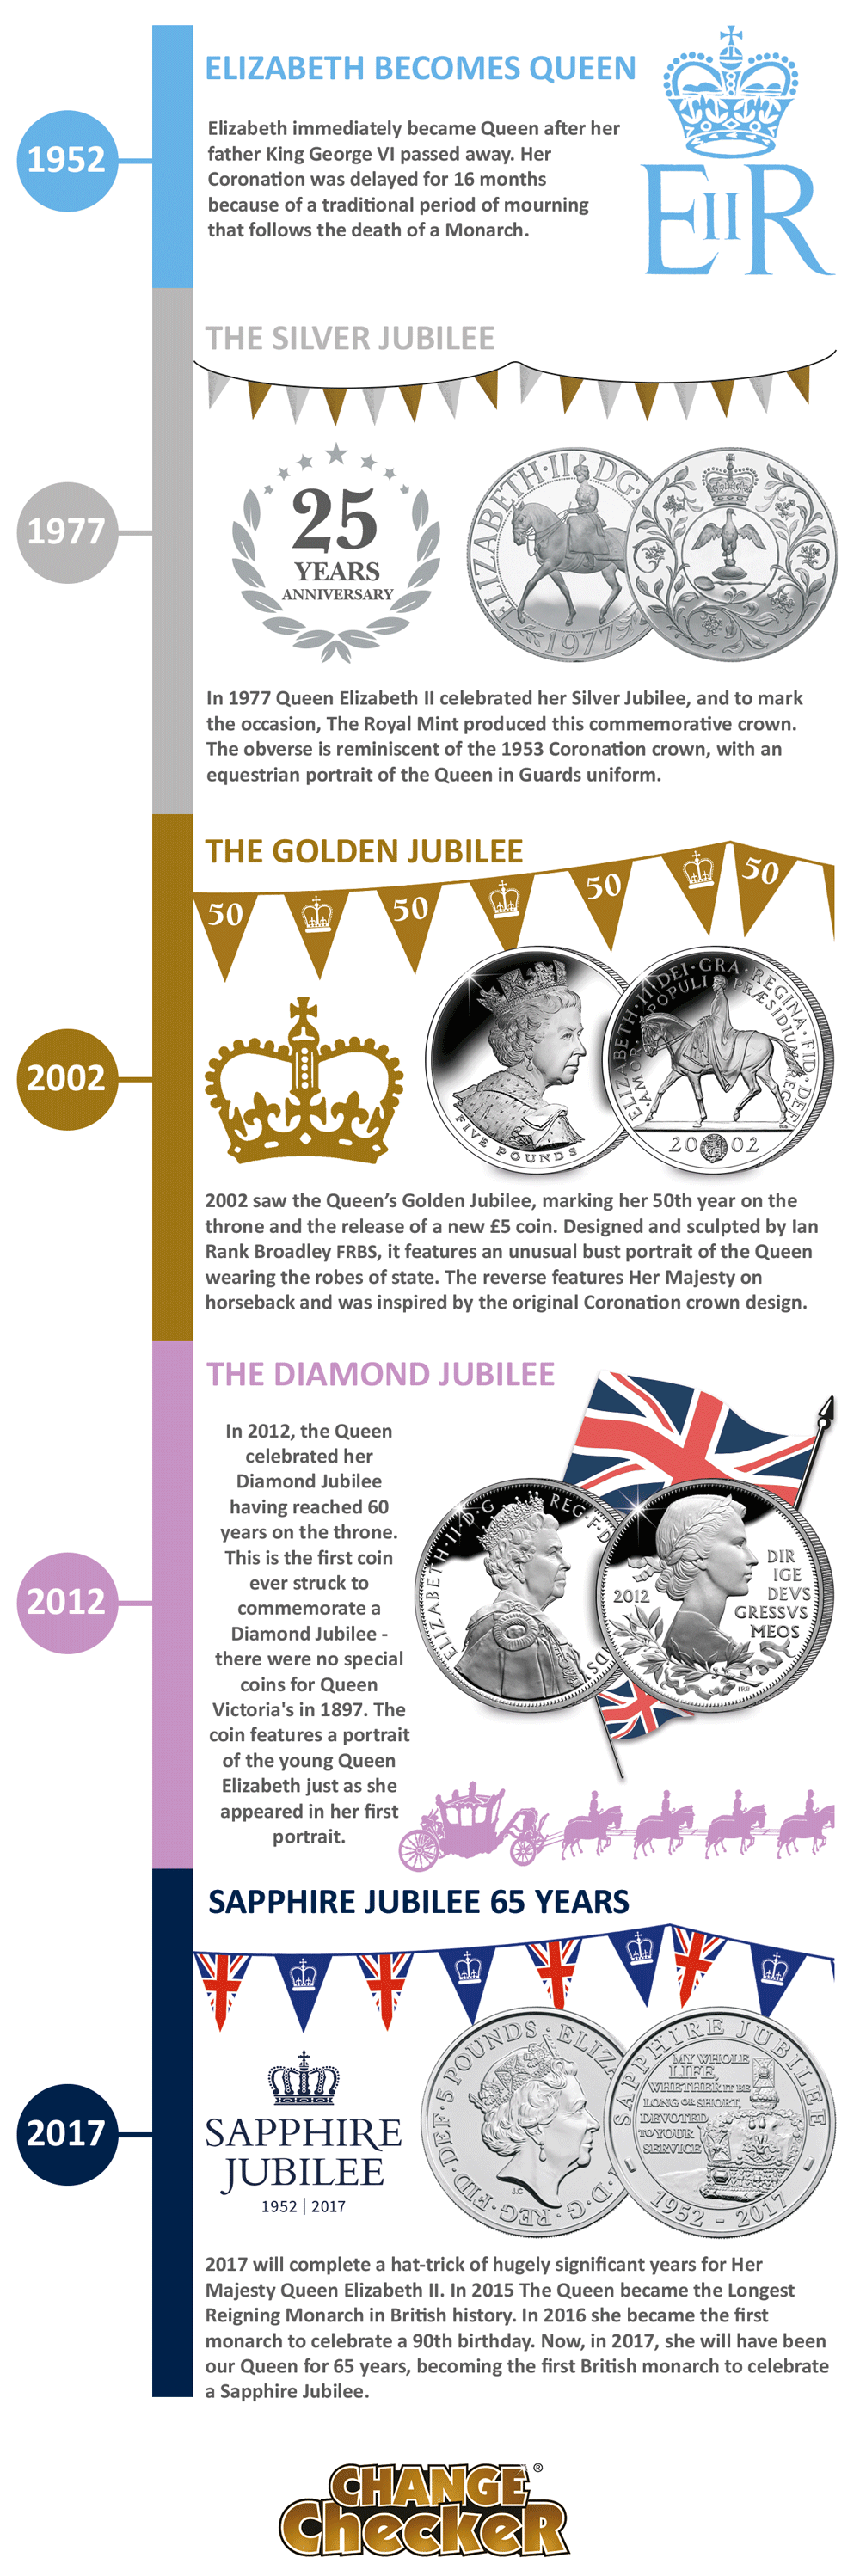 coronation jubilee archives - change checker